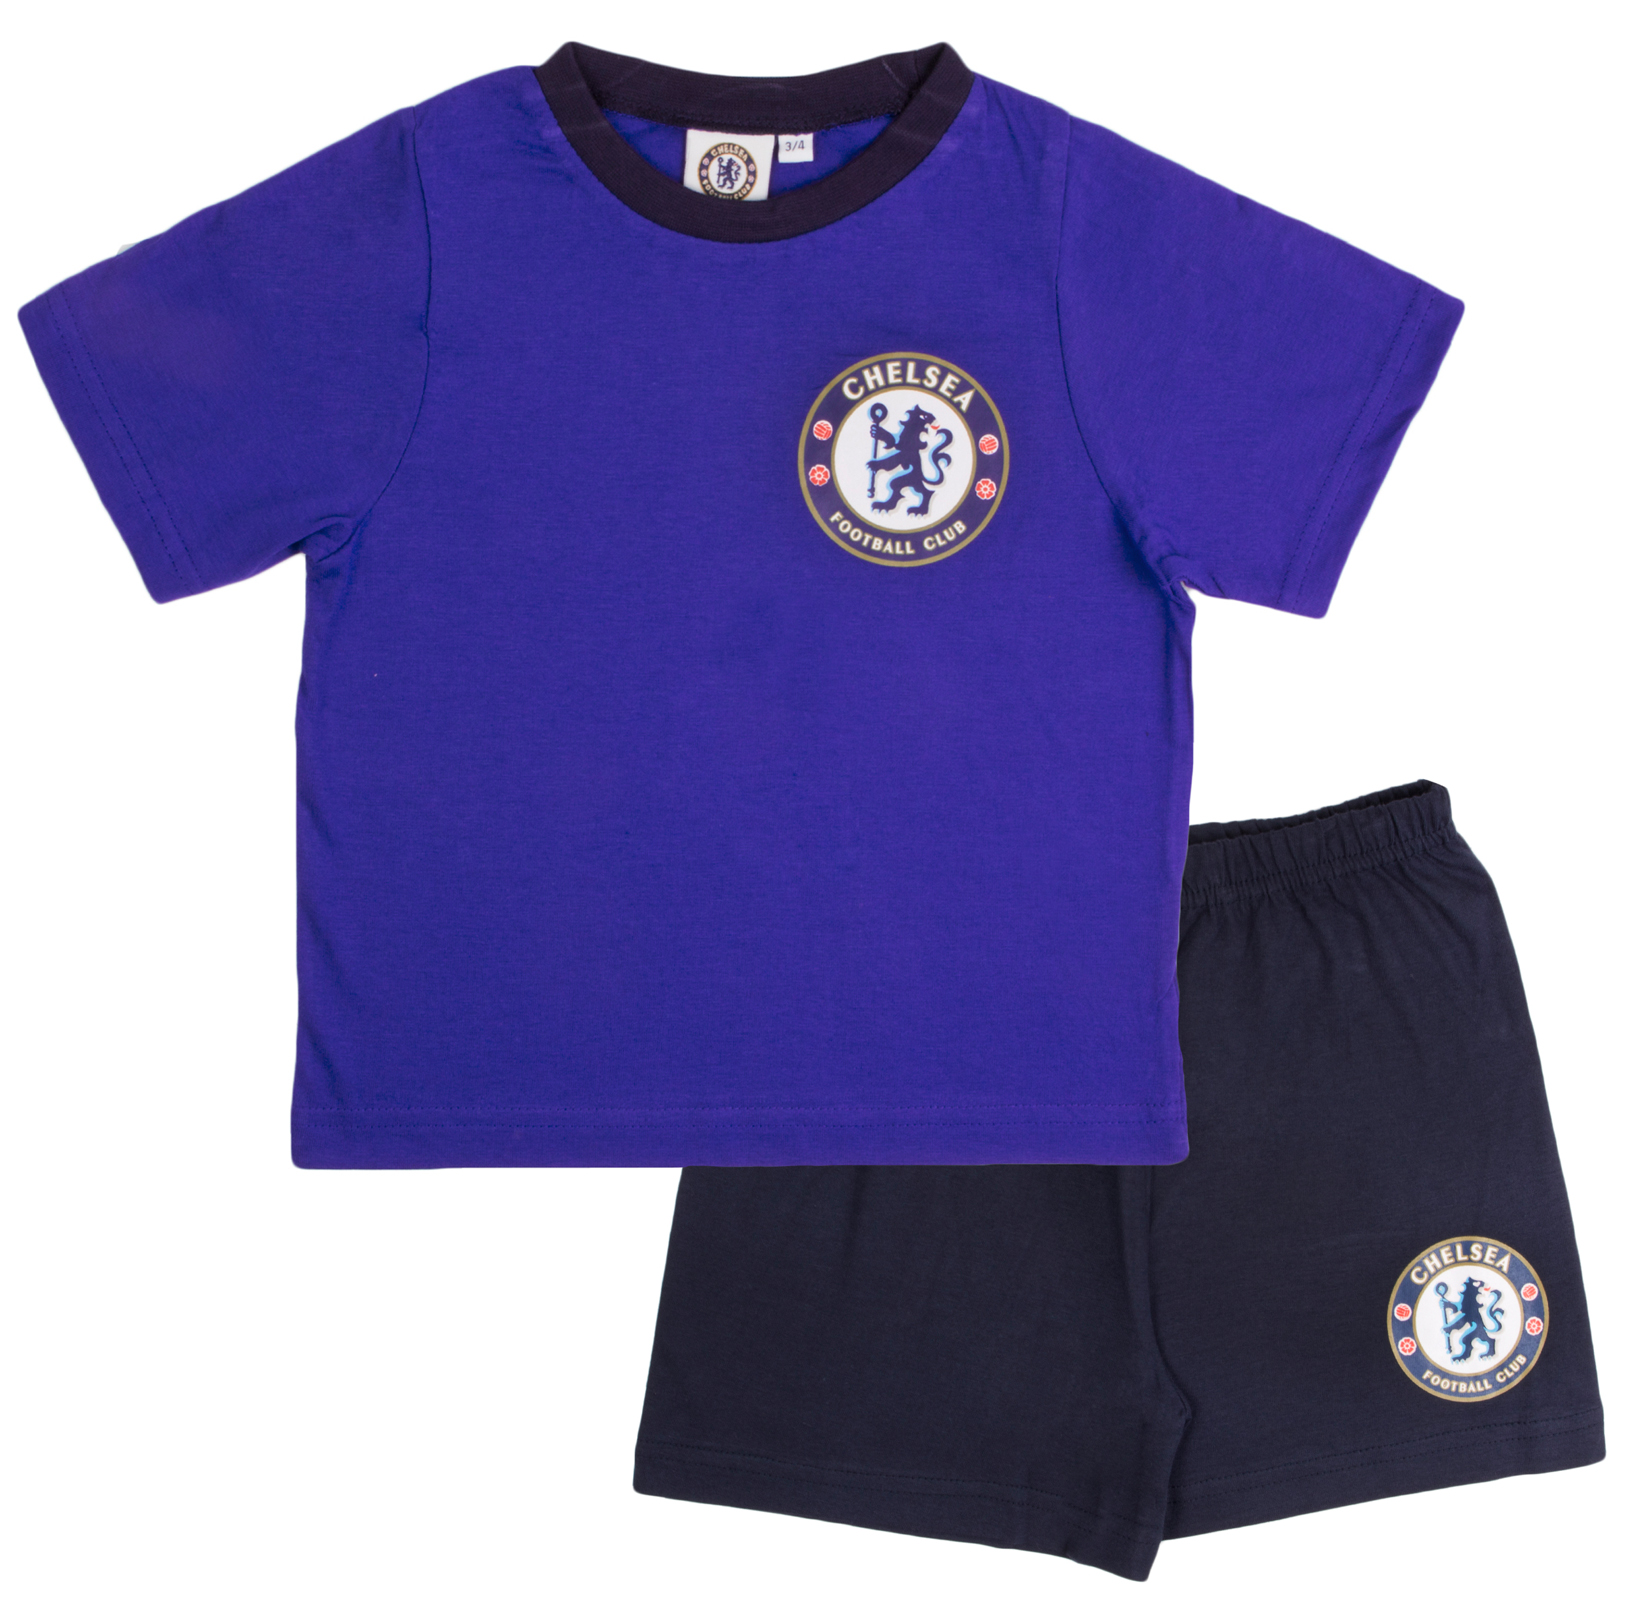 good service lower price with unequal in performance Details about Mens Official Chelsea FC Short Pyjamas 100% Cotton  Premiership Football Pjs Size